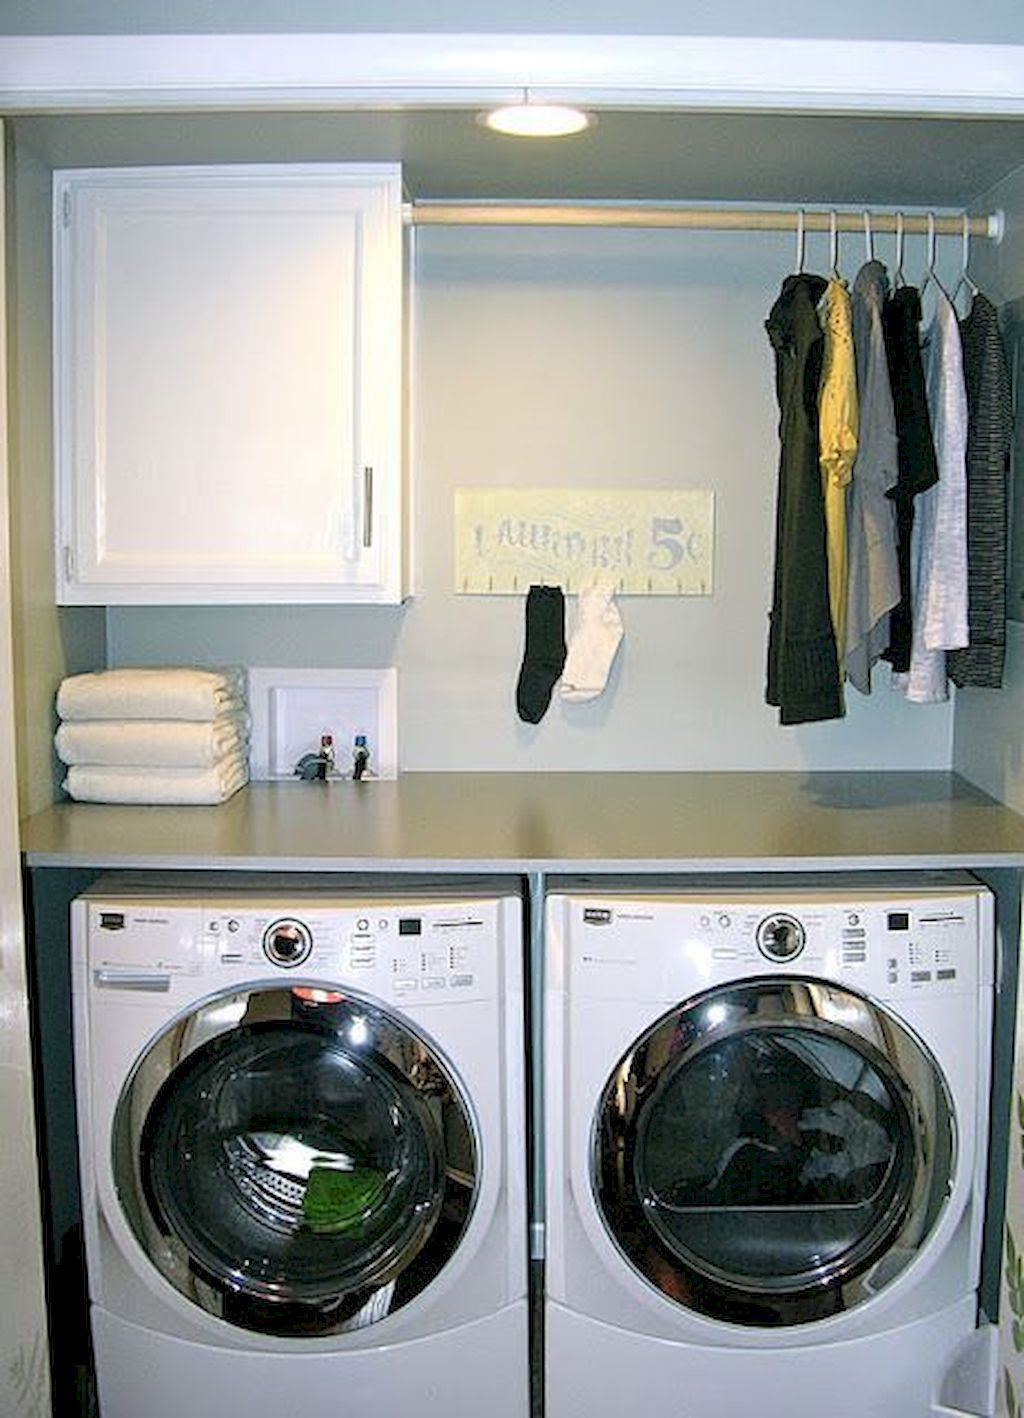 30 Best Small Laundry Room Ideas and Photos on A Budget Laundry